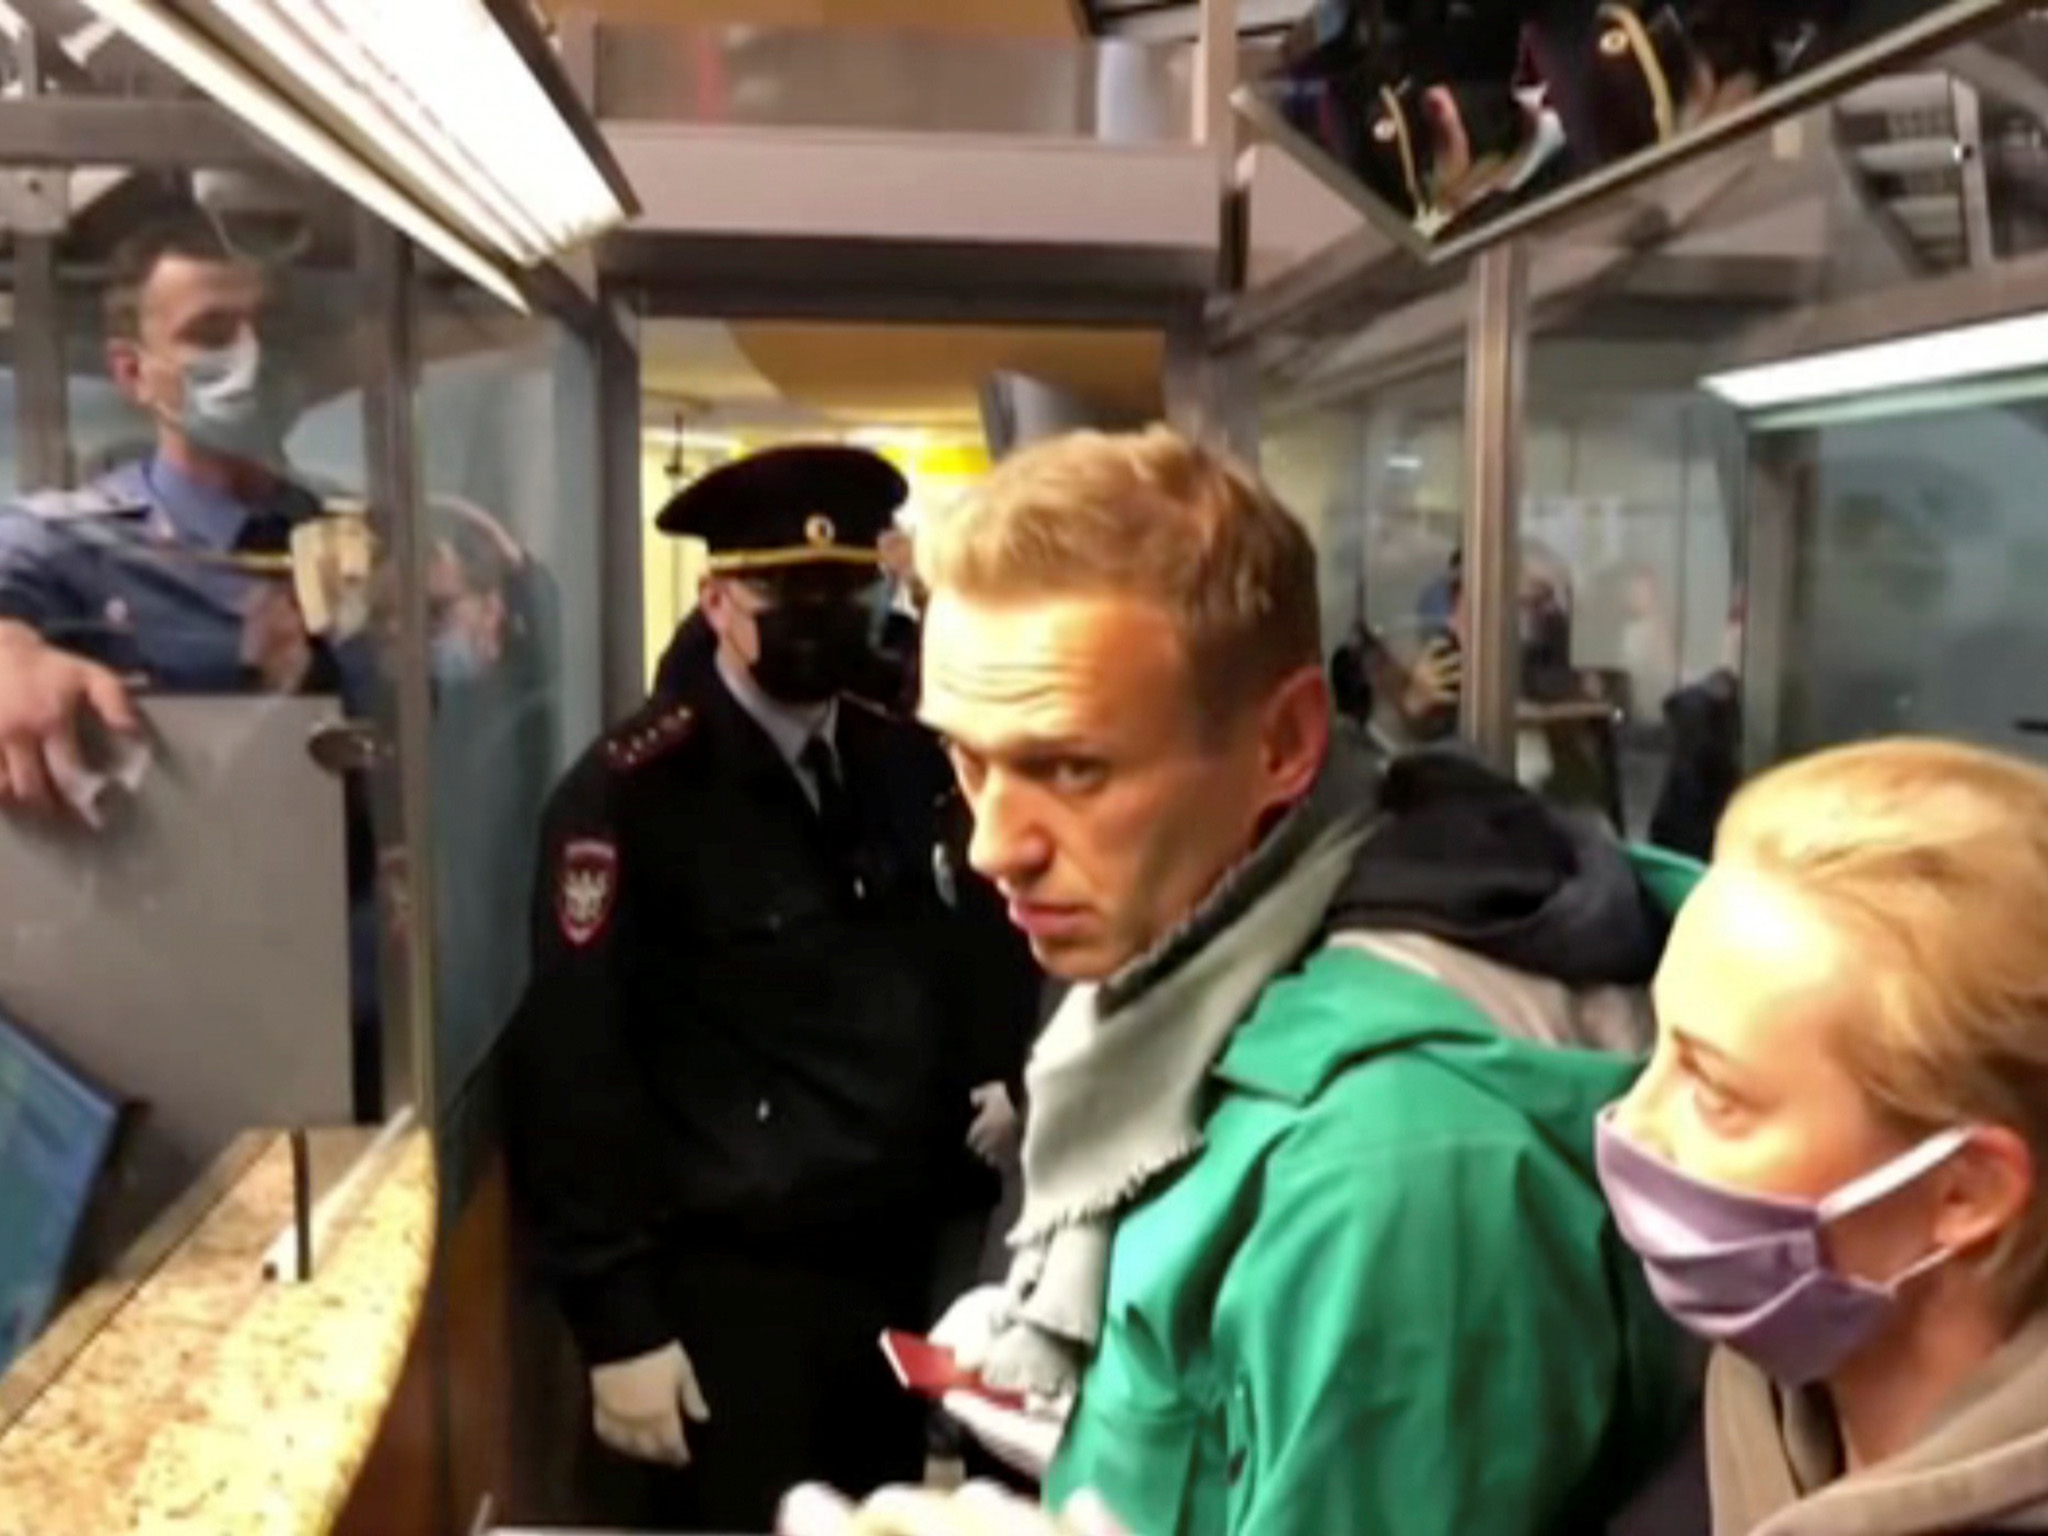 Alexei Navalny: UK calls for immediate release of Putin critic after 'appalling' arrest